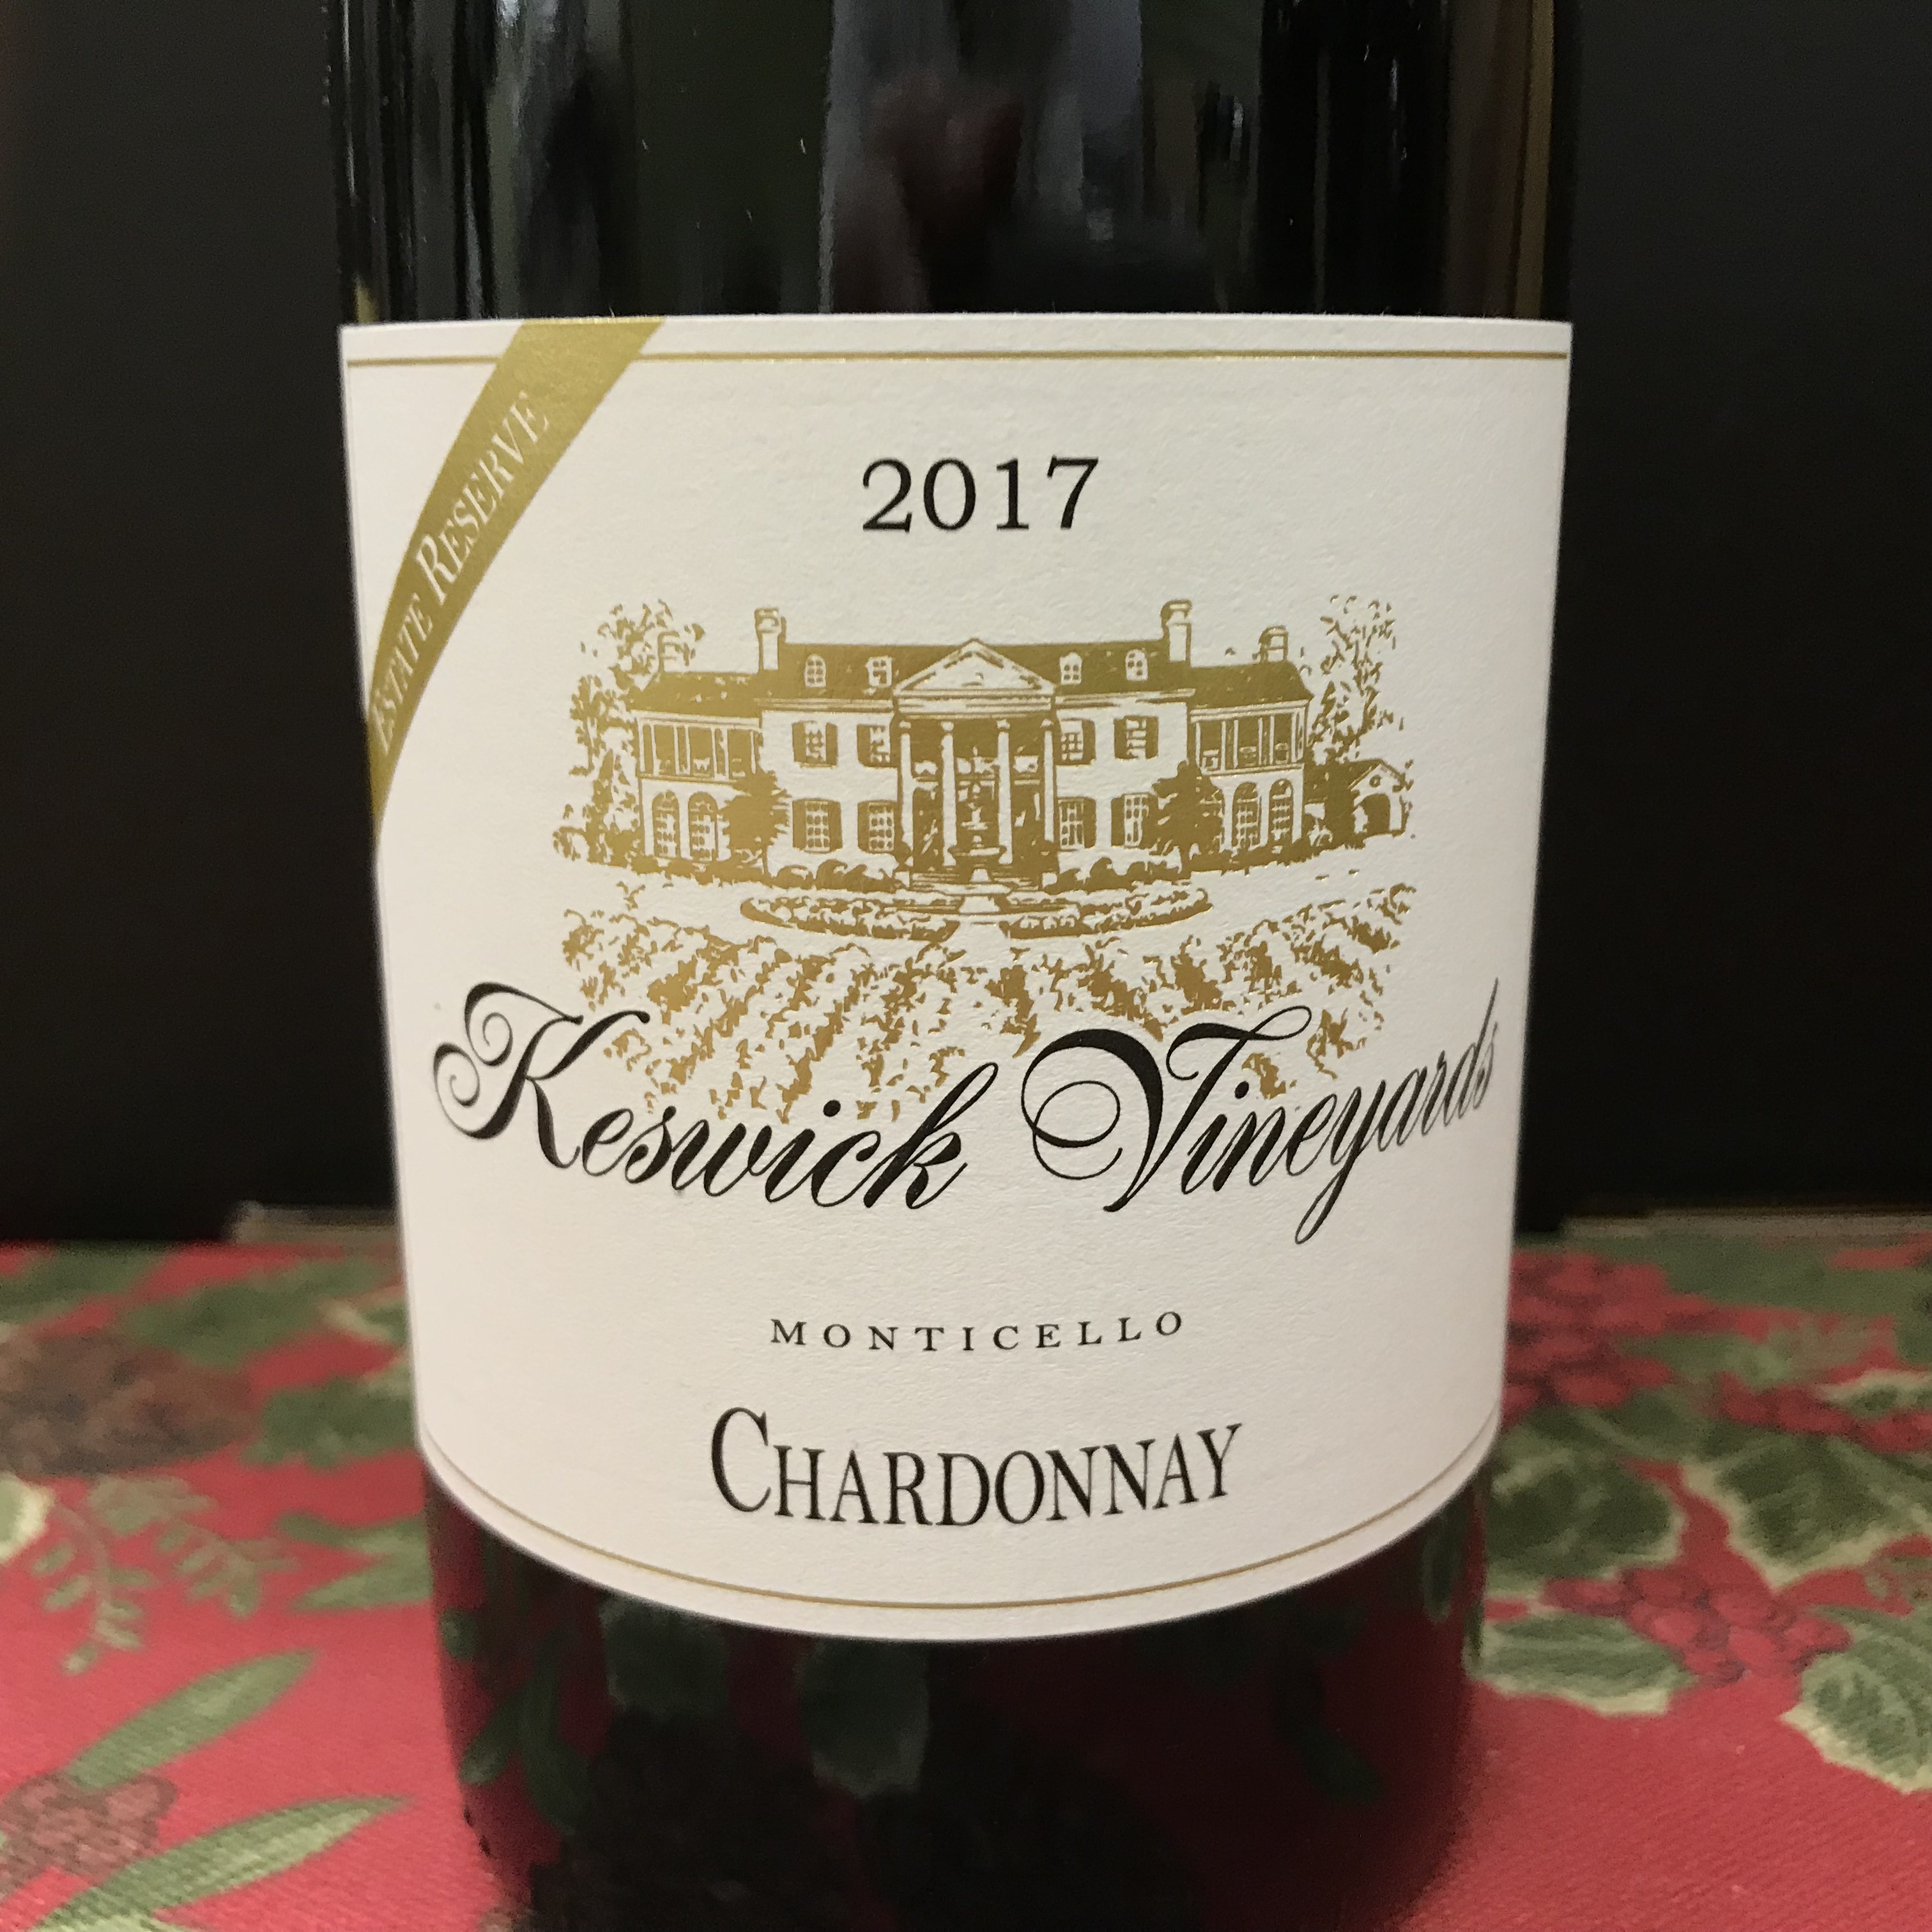 Keswick Vineyards Monticello Chardonnay 2017